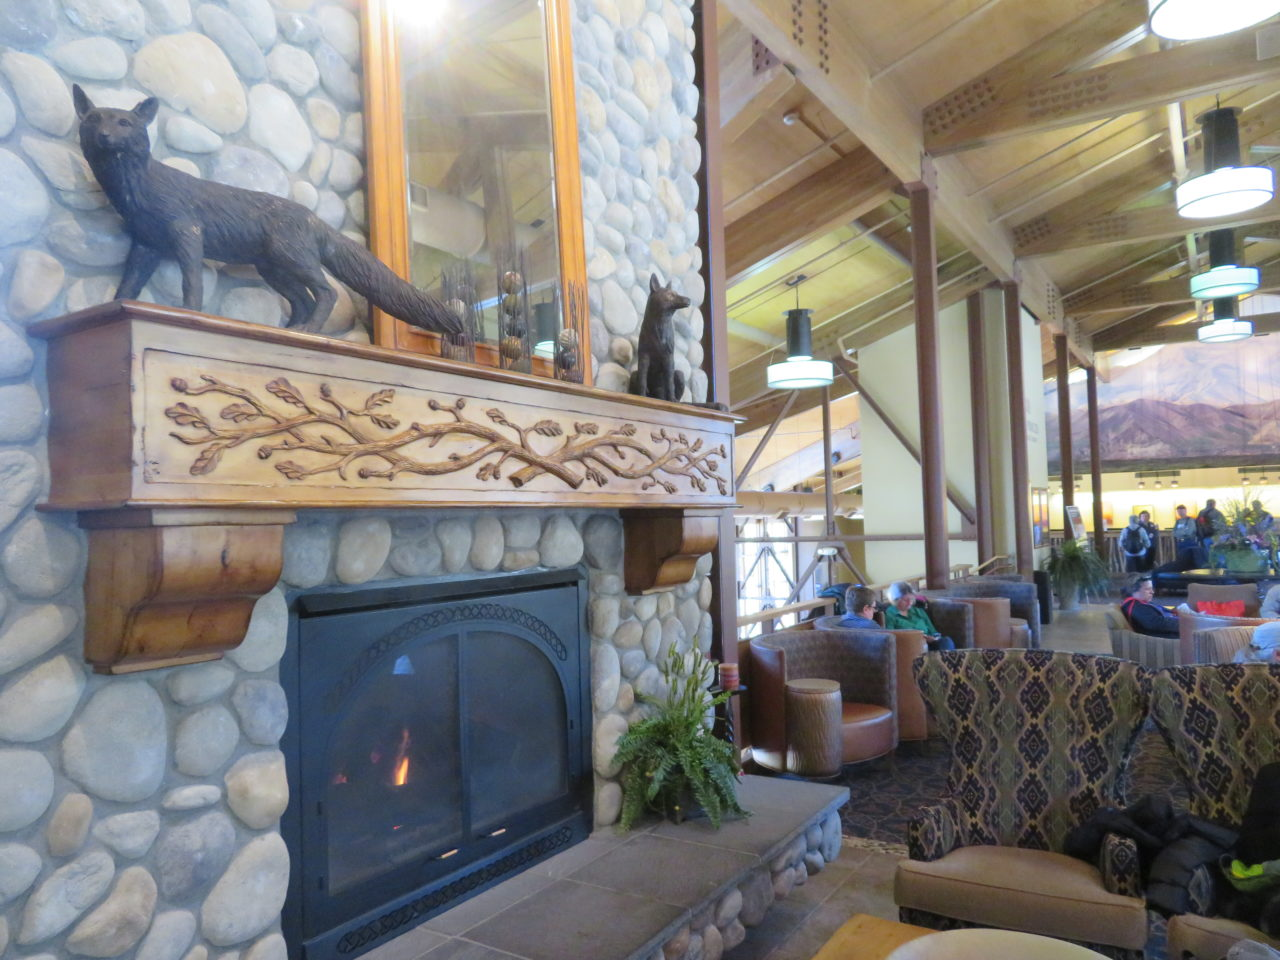 Lobby of the Denali Princess Wilderness Lodge in Alaska